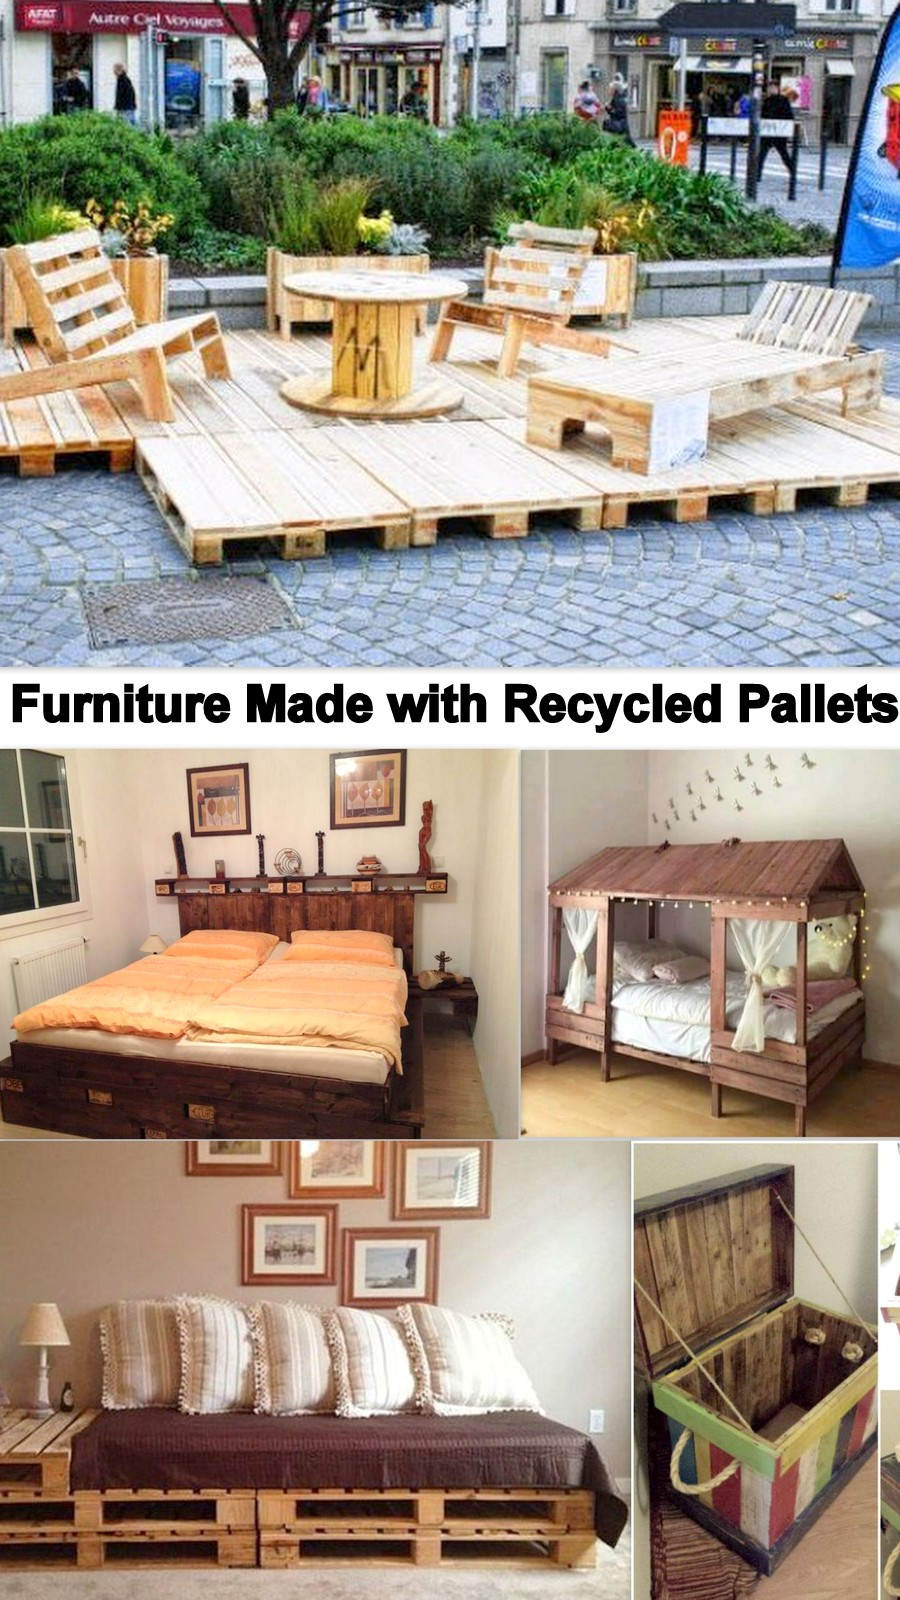 Furniture Made with Recycled Pallets